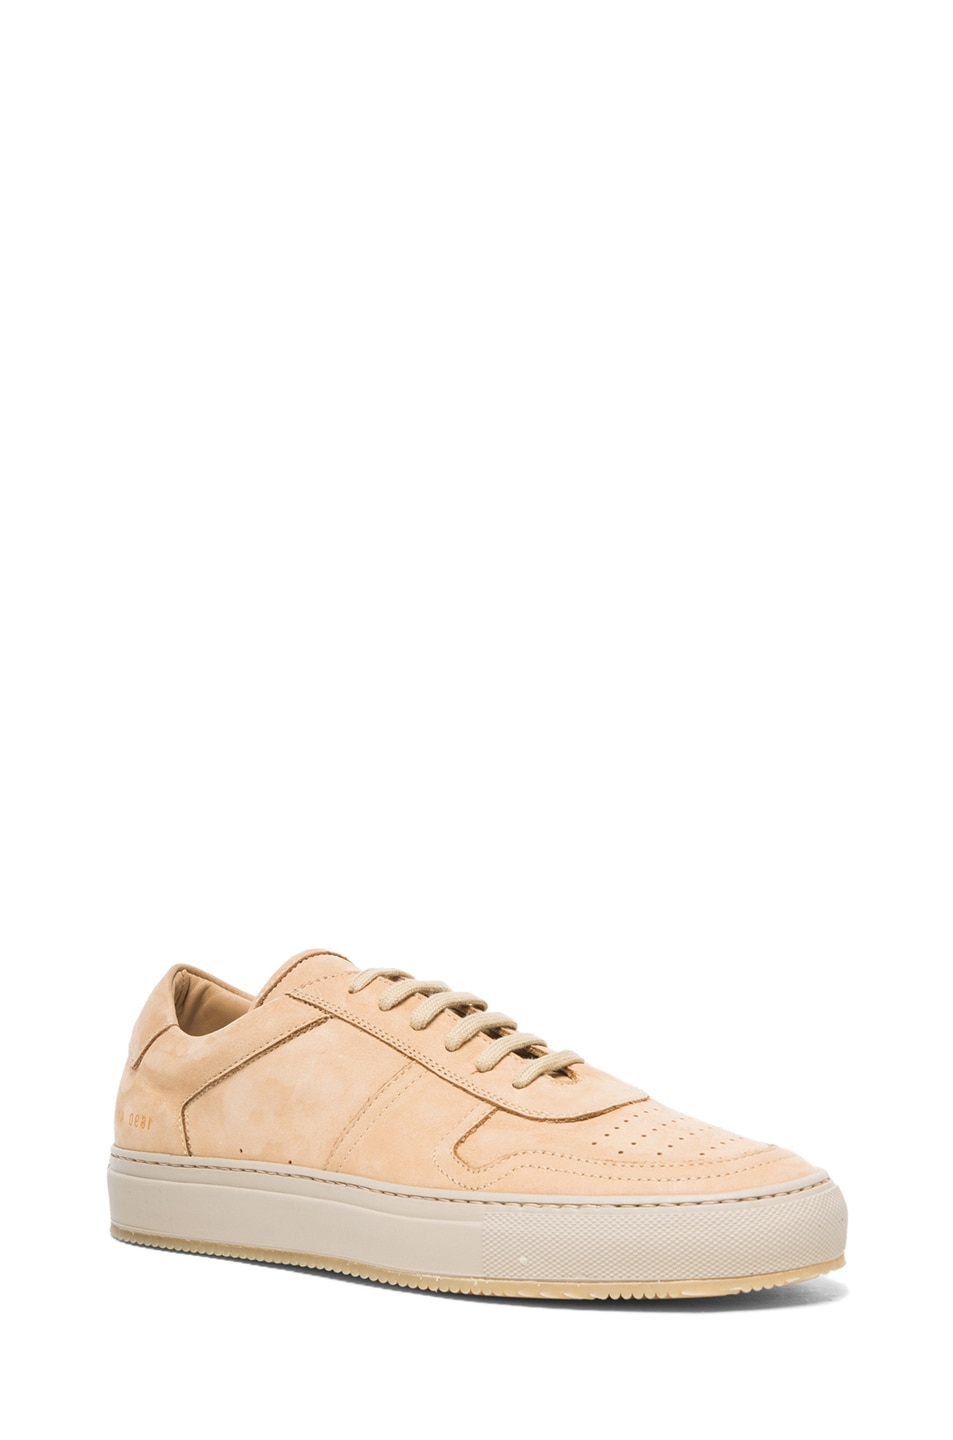 2180e45ff7e Image 1 of Common Projects Low Basketball Suede Sneakers in Tan